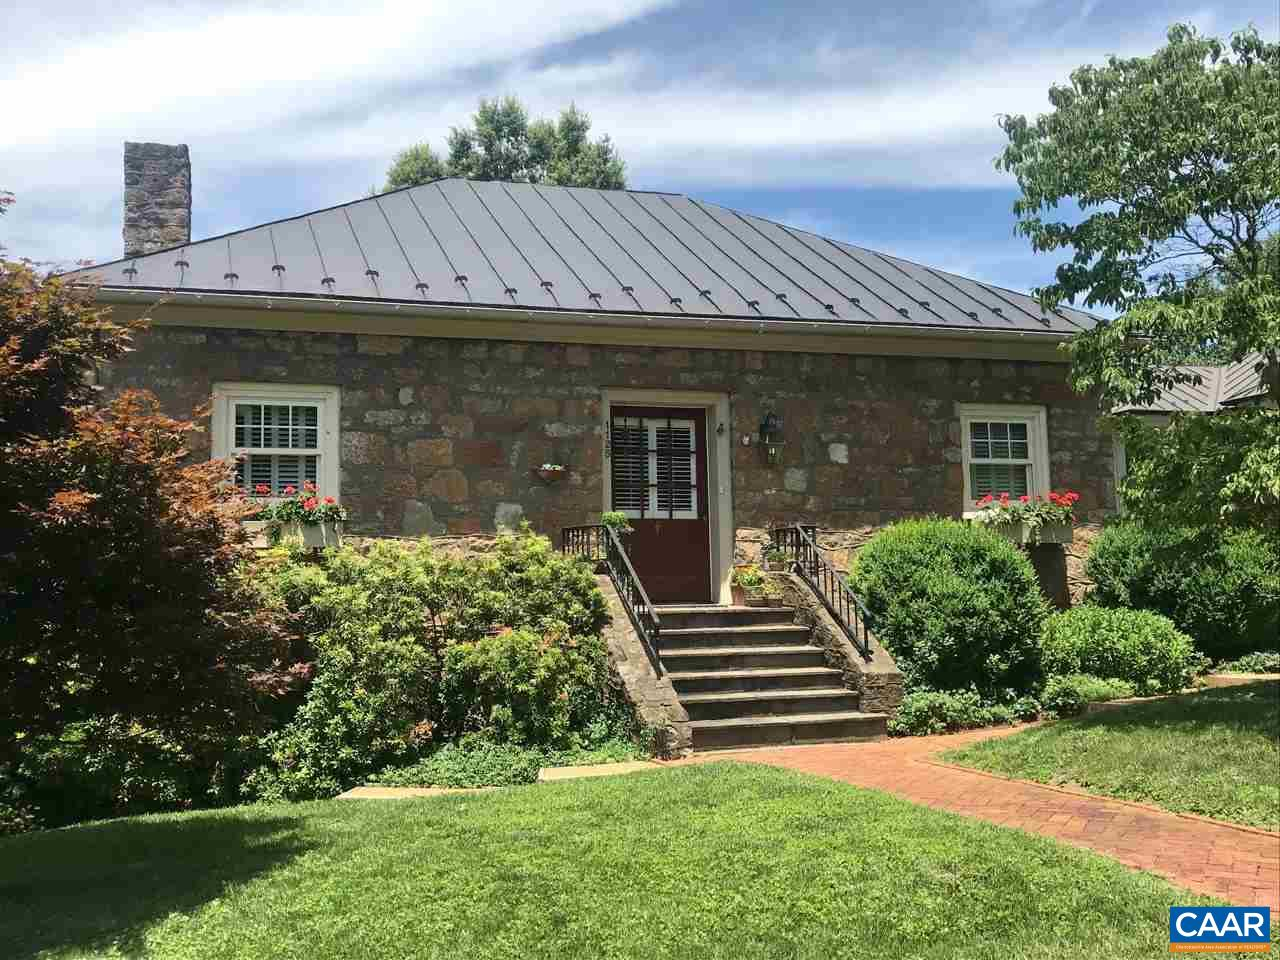 Charming, one of a kind stone home in sought after Ednam subdivision. Completely renovated in 1982 and added on to in 2006, this home has been beautifully maintained. The present owner has carefully landscaped the yard which enhances the English cottage feel, to create a beautiful, inviting home close to Farmington, UVA, Boar's Head In & Sports Club, medical facilities, and shopping.